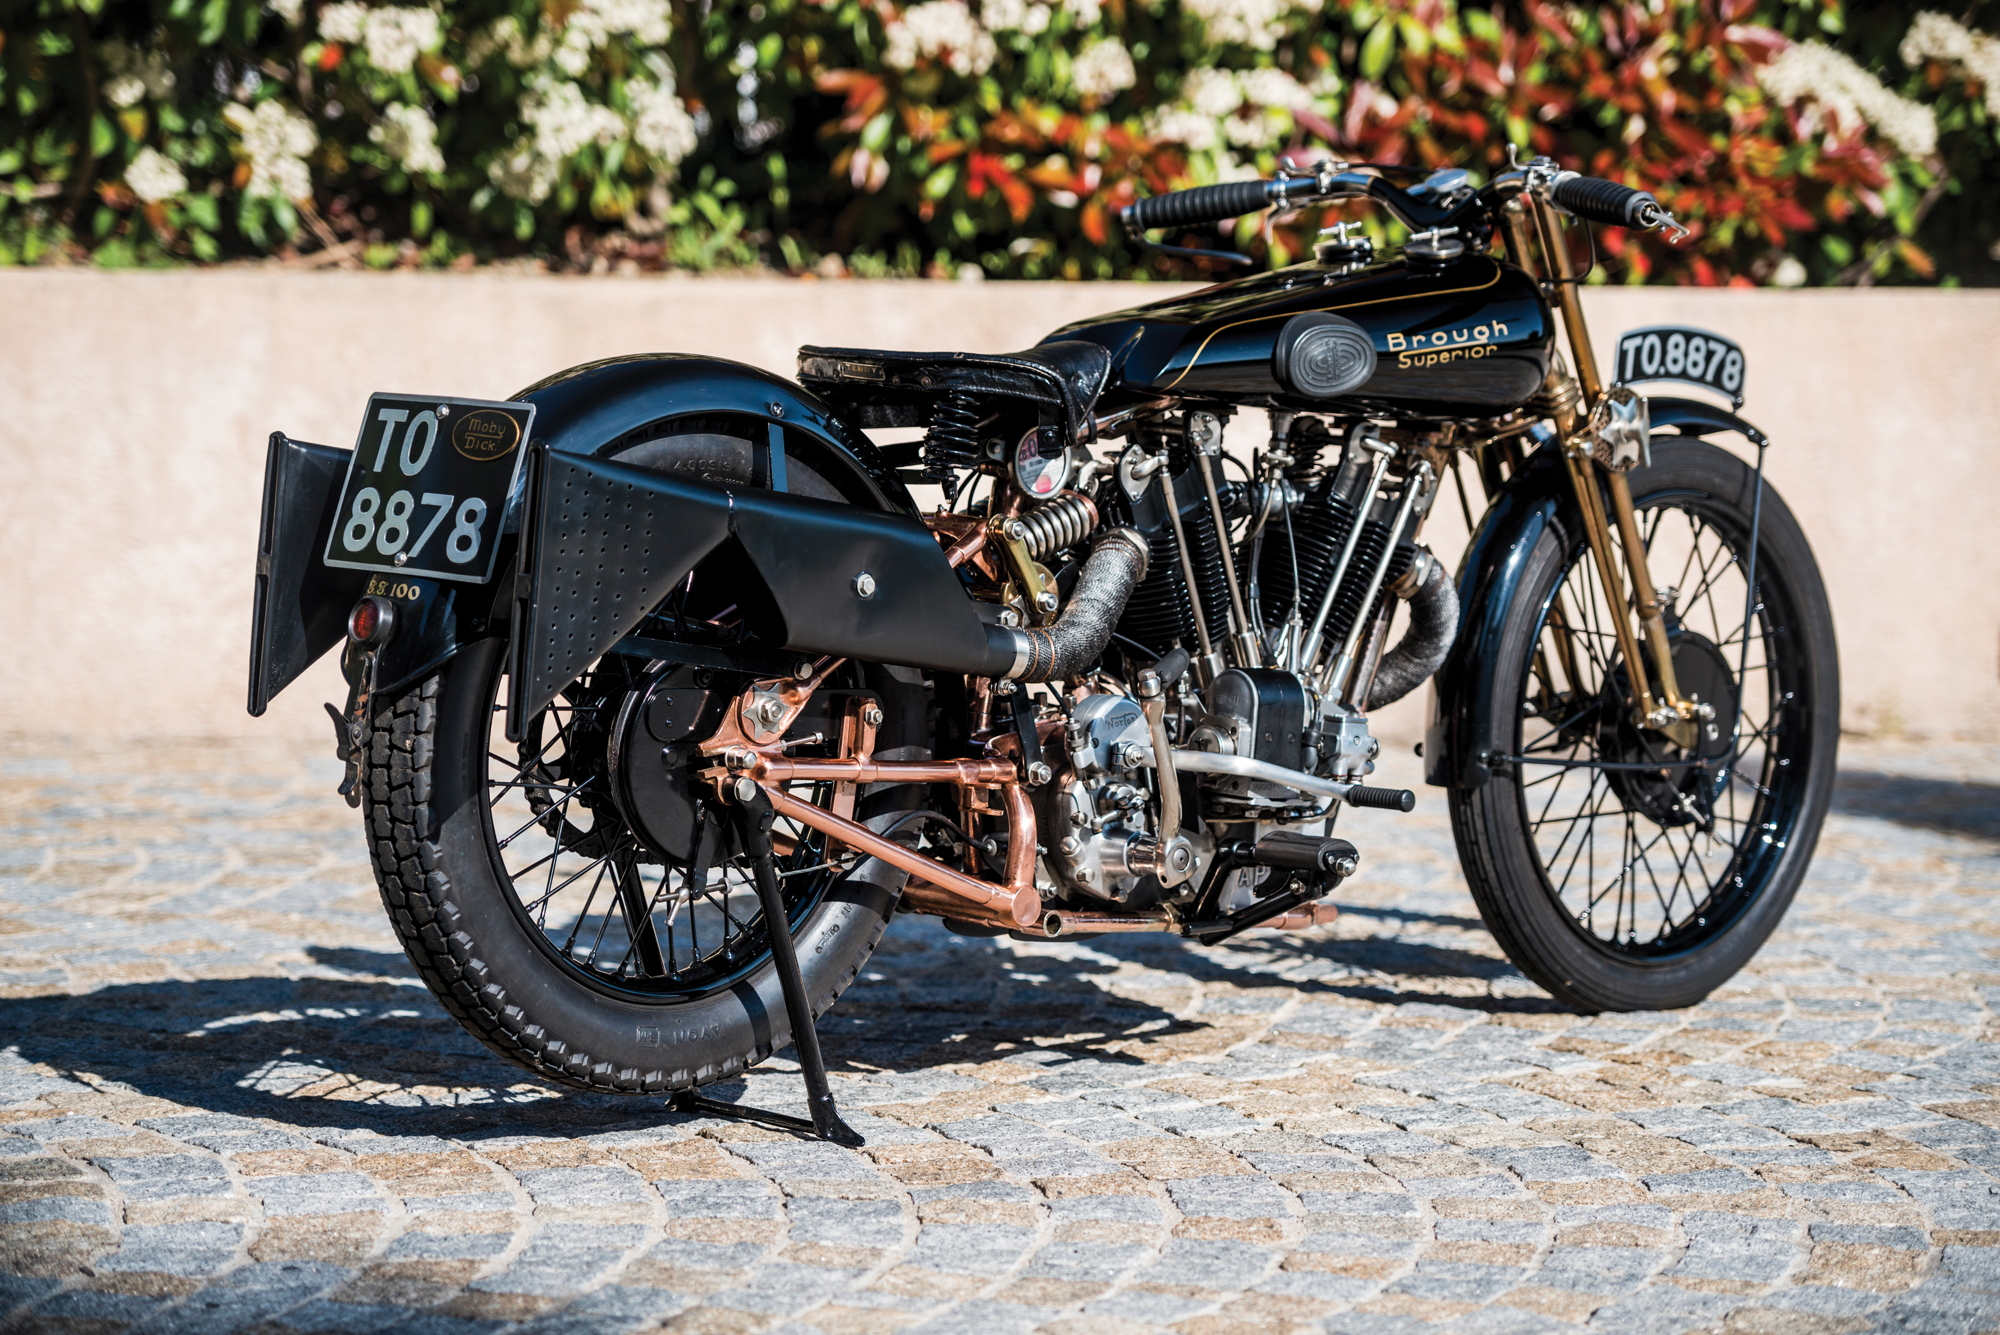 Brough Superior SS100 Moby Dick rear 2017 Villa Erba